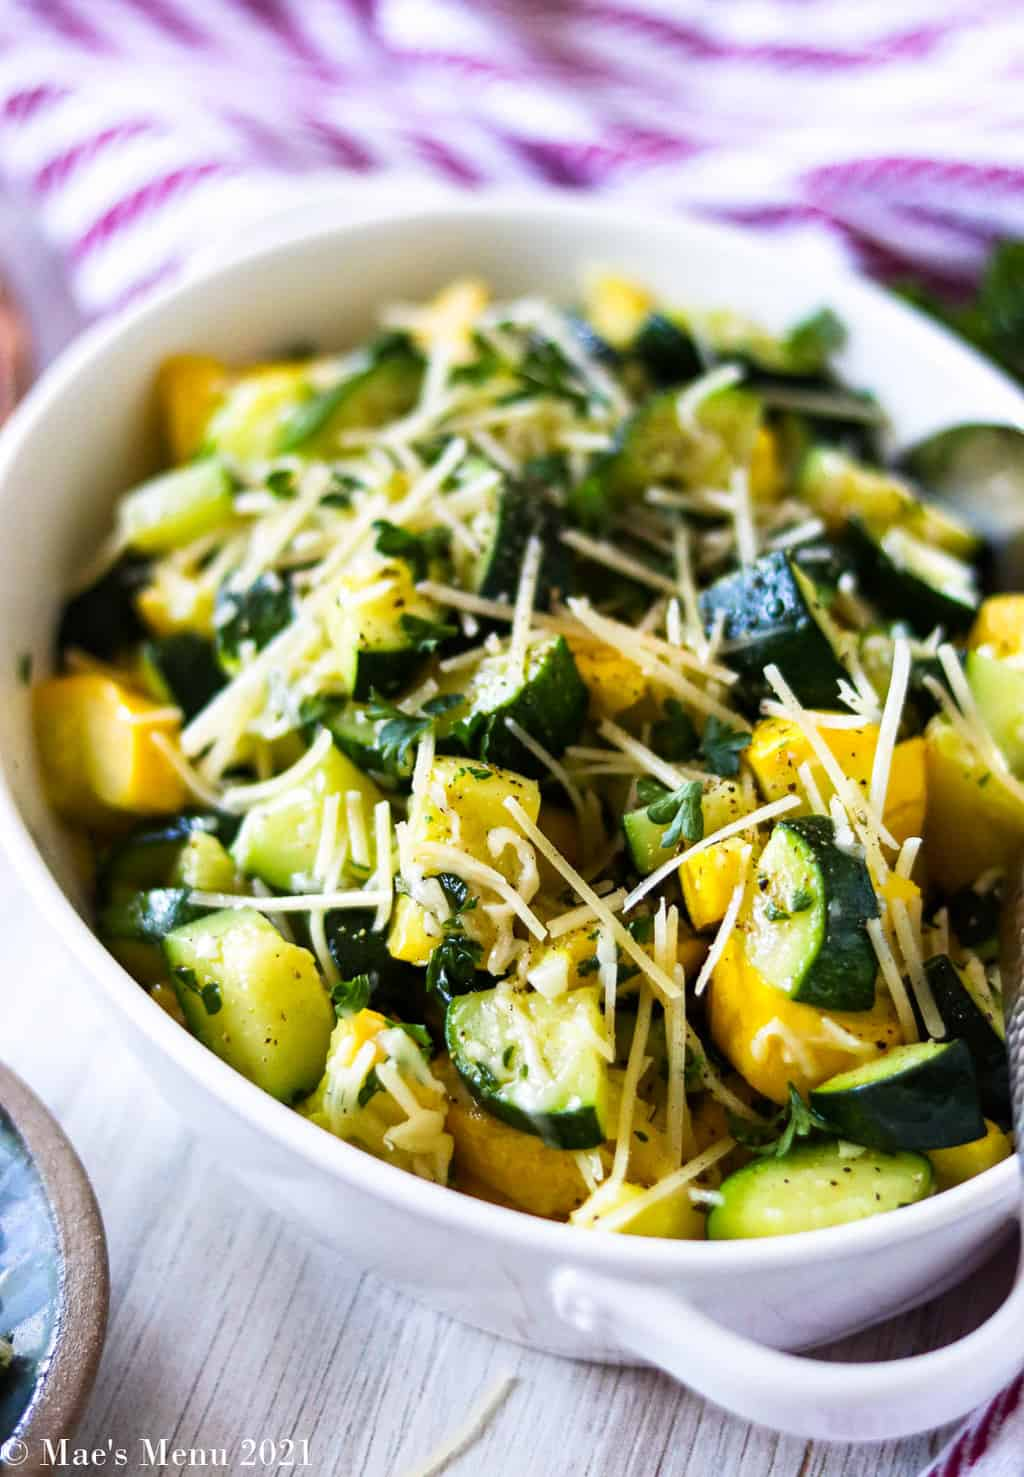 An up-close side shot of a bowl of sauteed zucchini and yellow squash